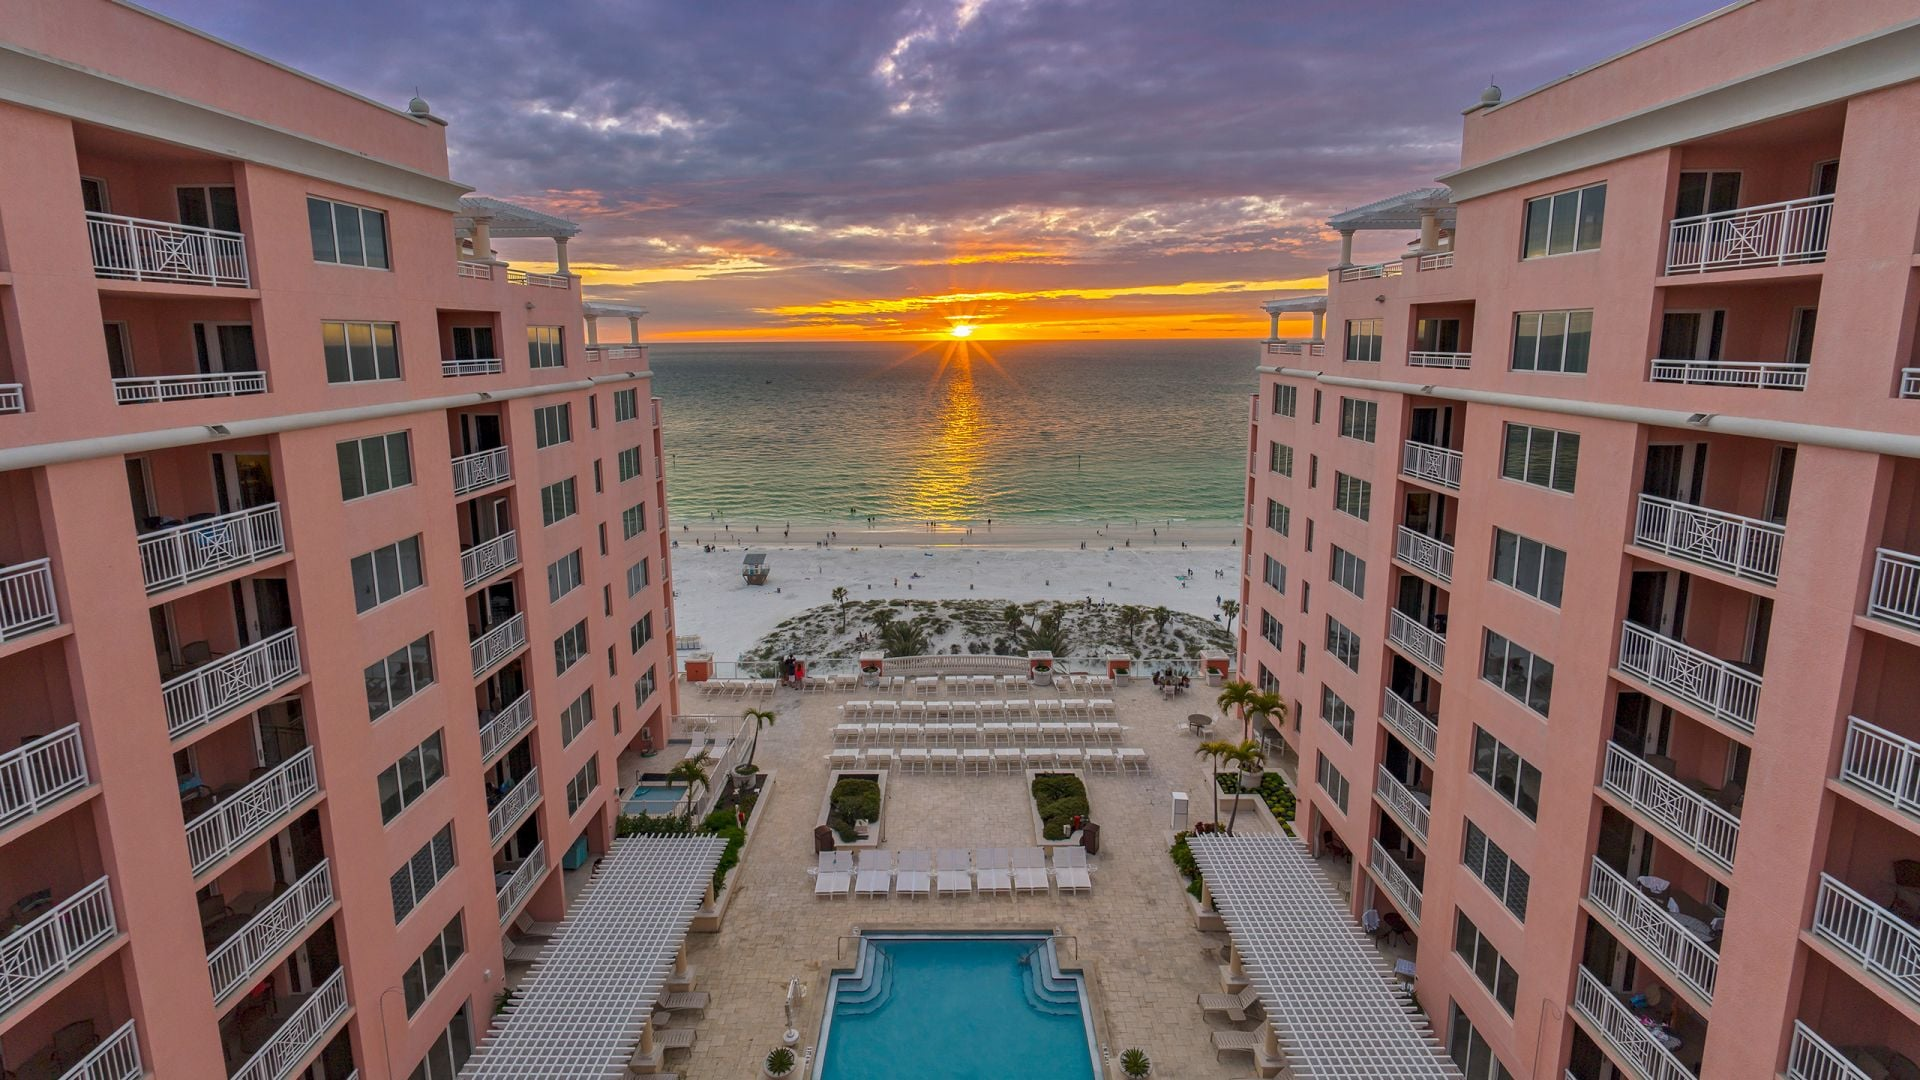 Sunset in Florida at Hyatt Regency Clearwater Beach